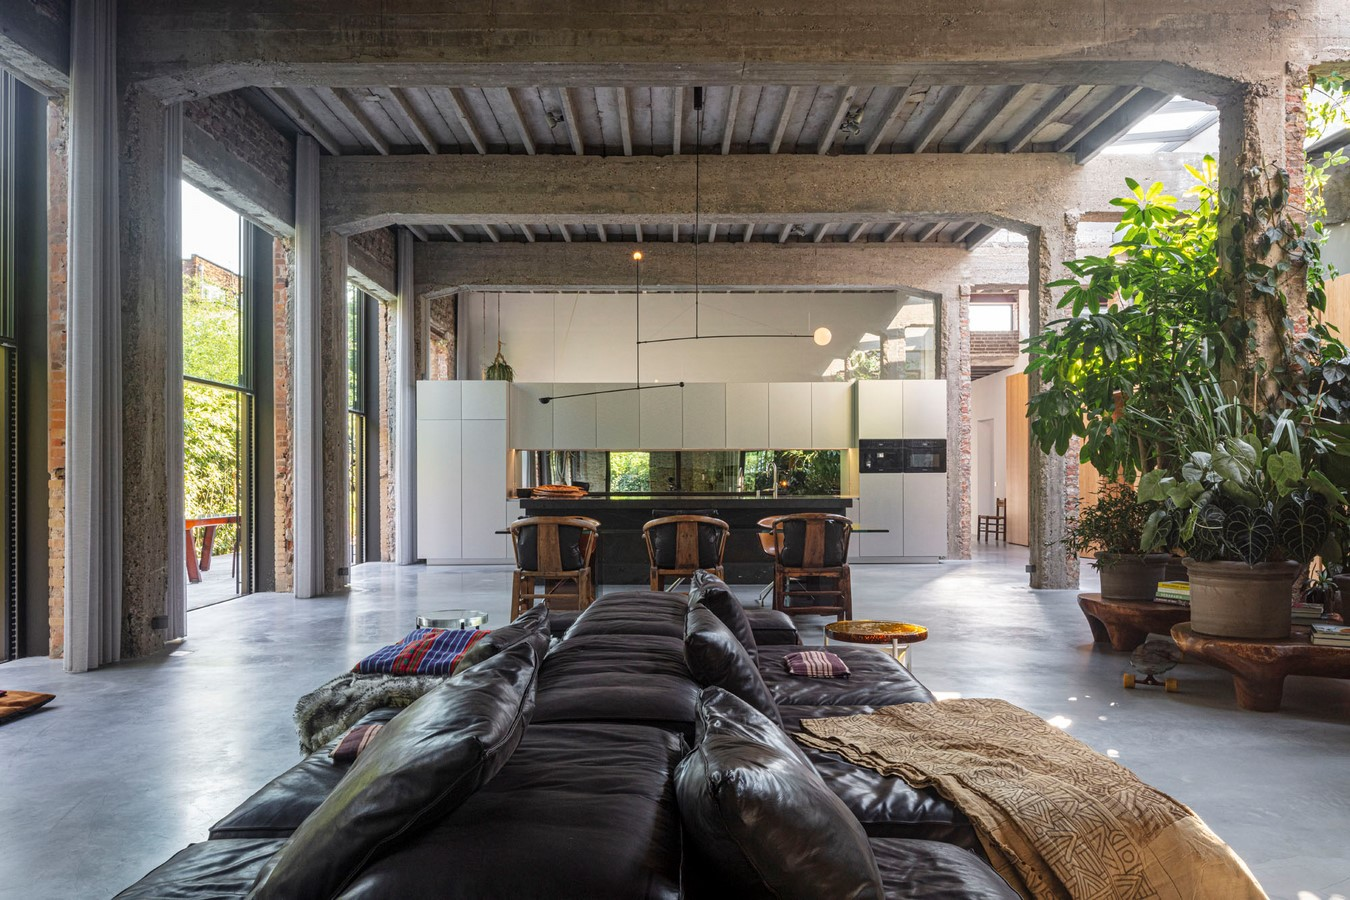 Abandoned 1940s Sports Building converted into New Villa With Naked Brick Walls by MASA Architects - Sheet4